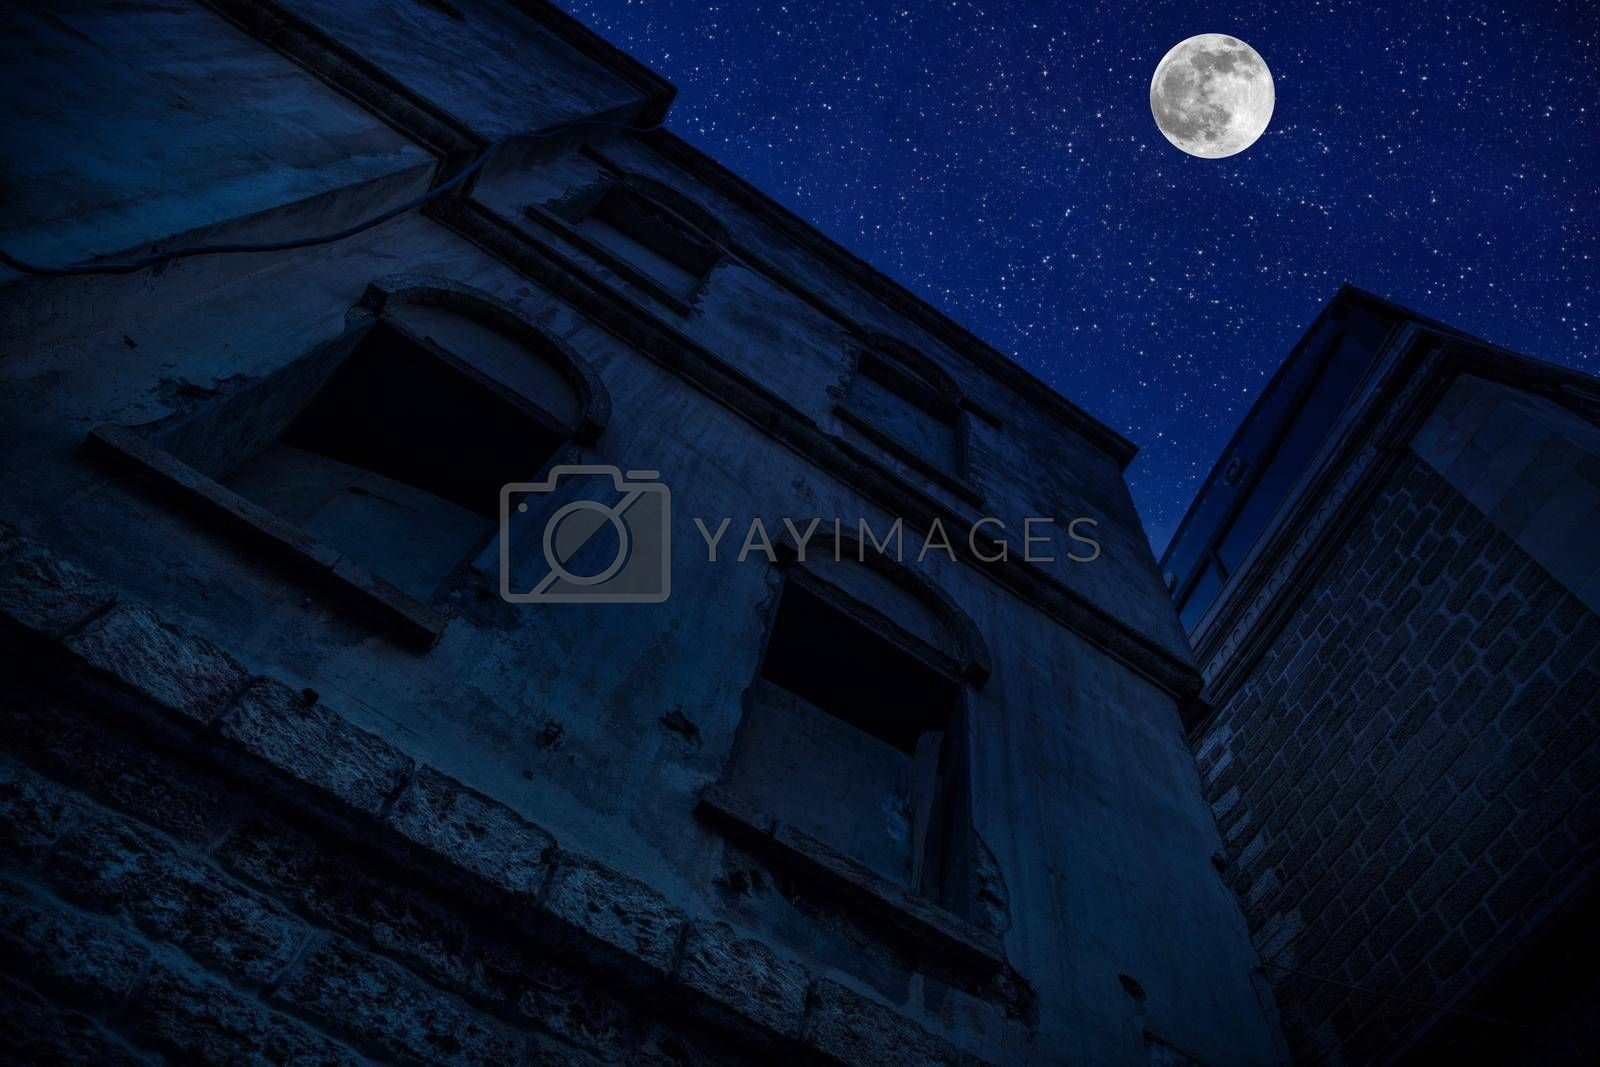 Old city streets at night. Full moon over the city at night, Baku Azerbaijan. Big full moon shining bright over buildings